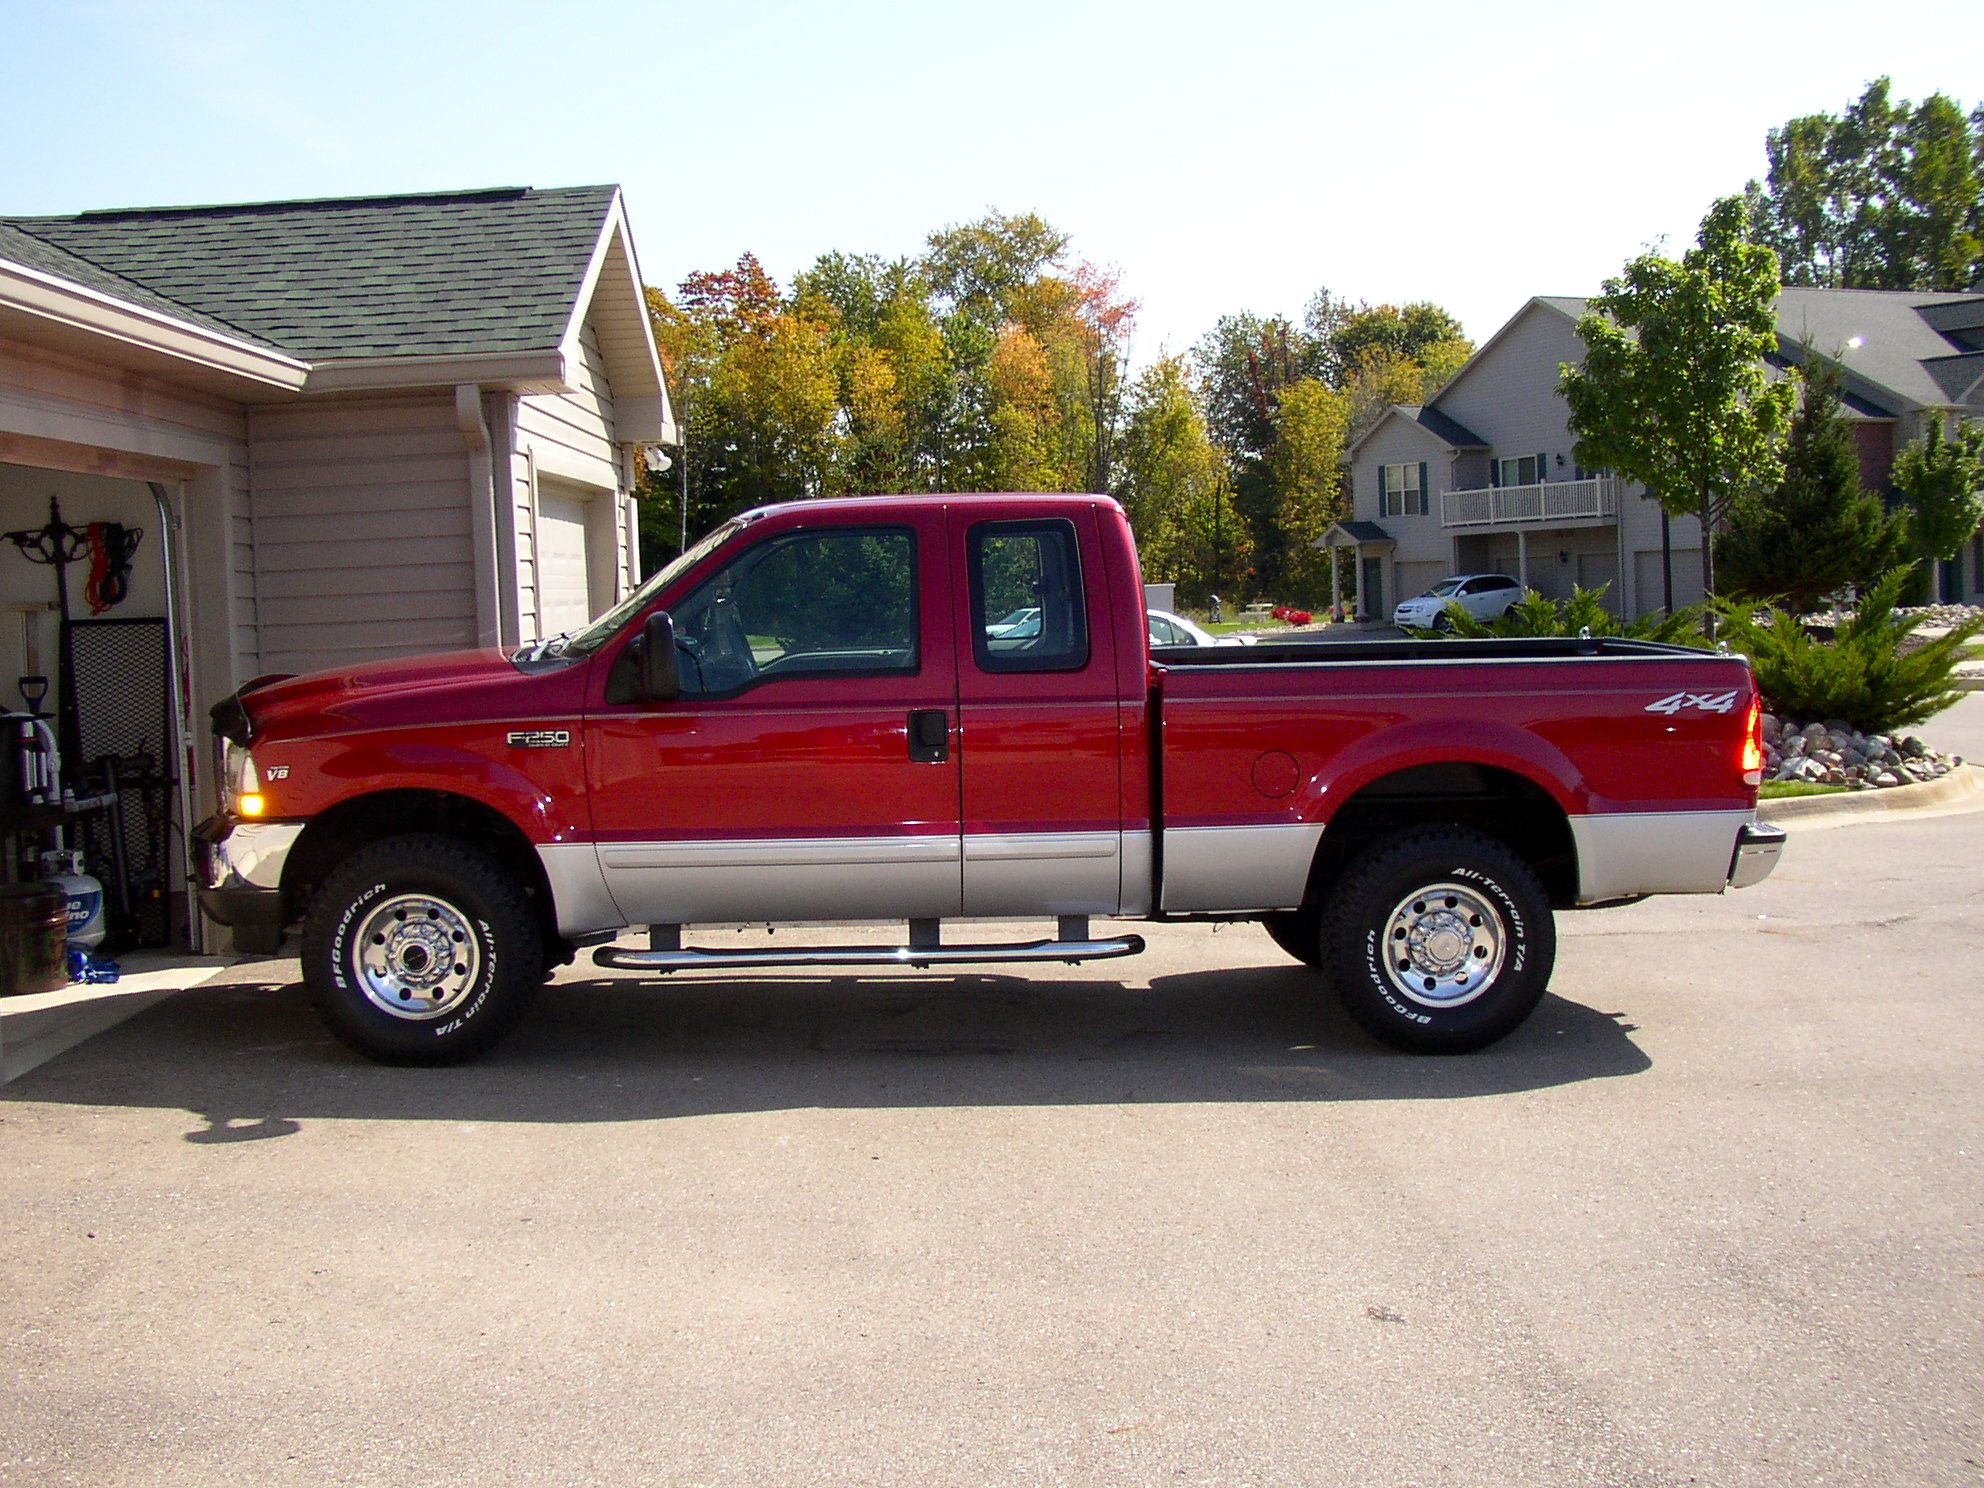 hight resolution of  9 2002 f250 super duty 4x4 4 door crew deep red wine not two toned v 10 solid bought new at ford dealership on mercury near cunningham